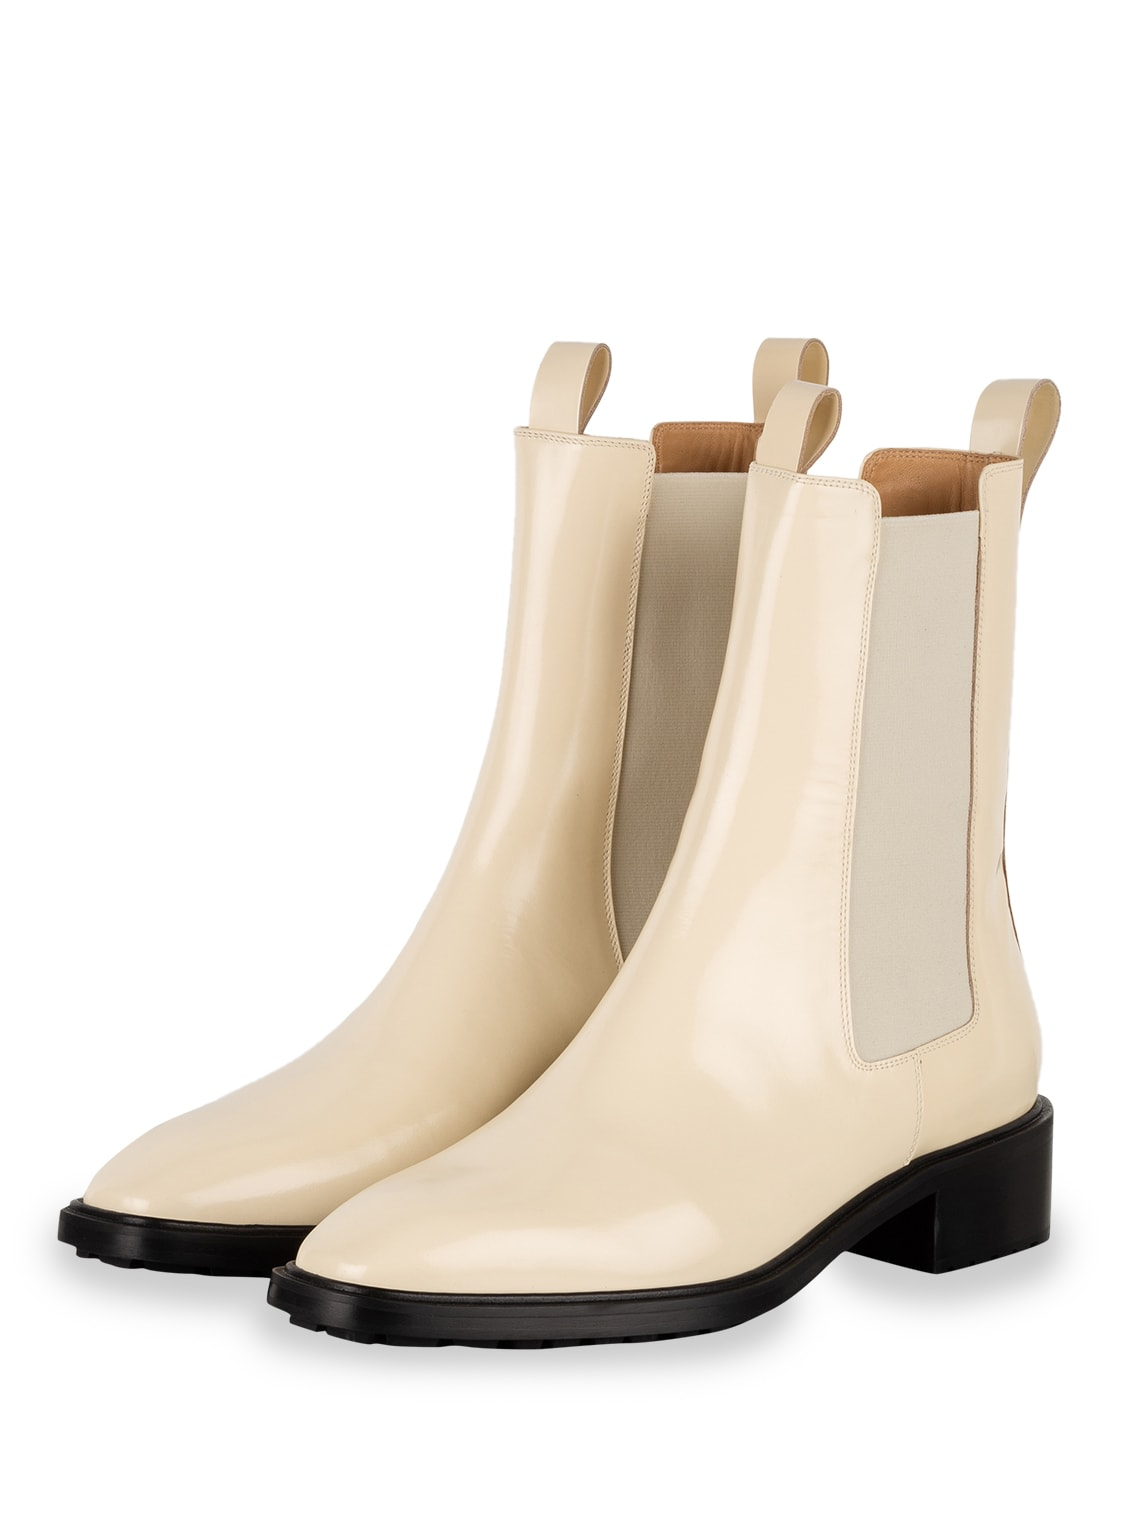 Image of Aeyde Chelsea-Boots Simone weiss